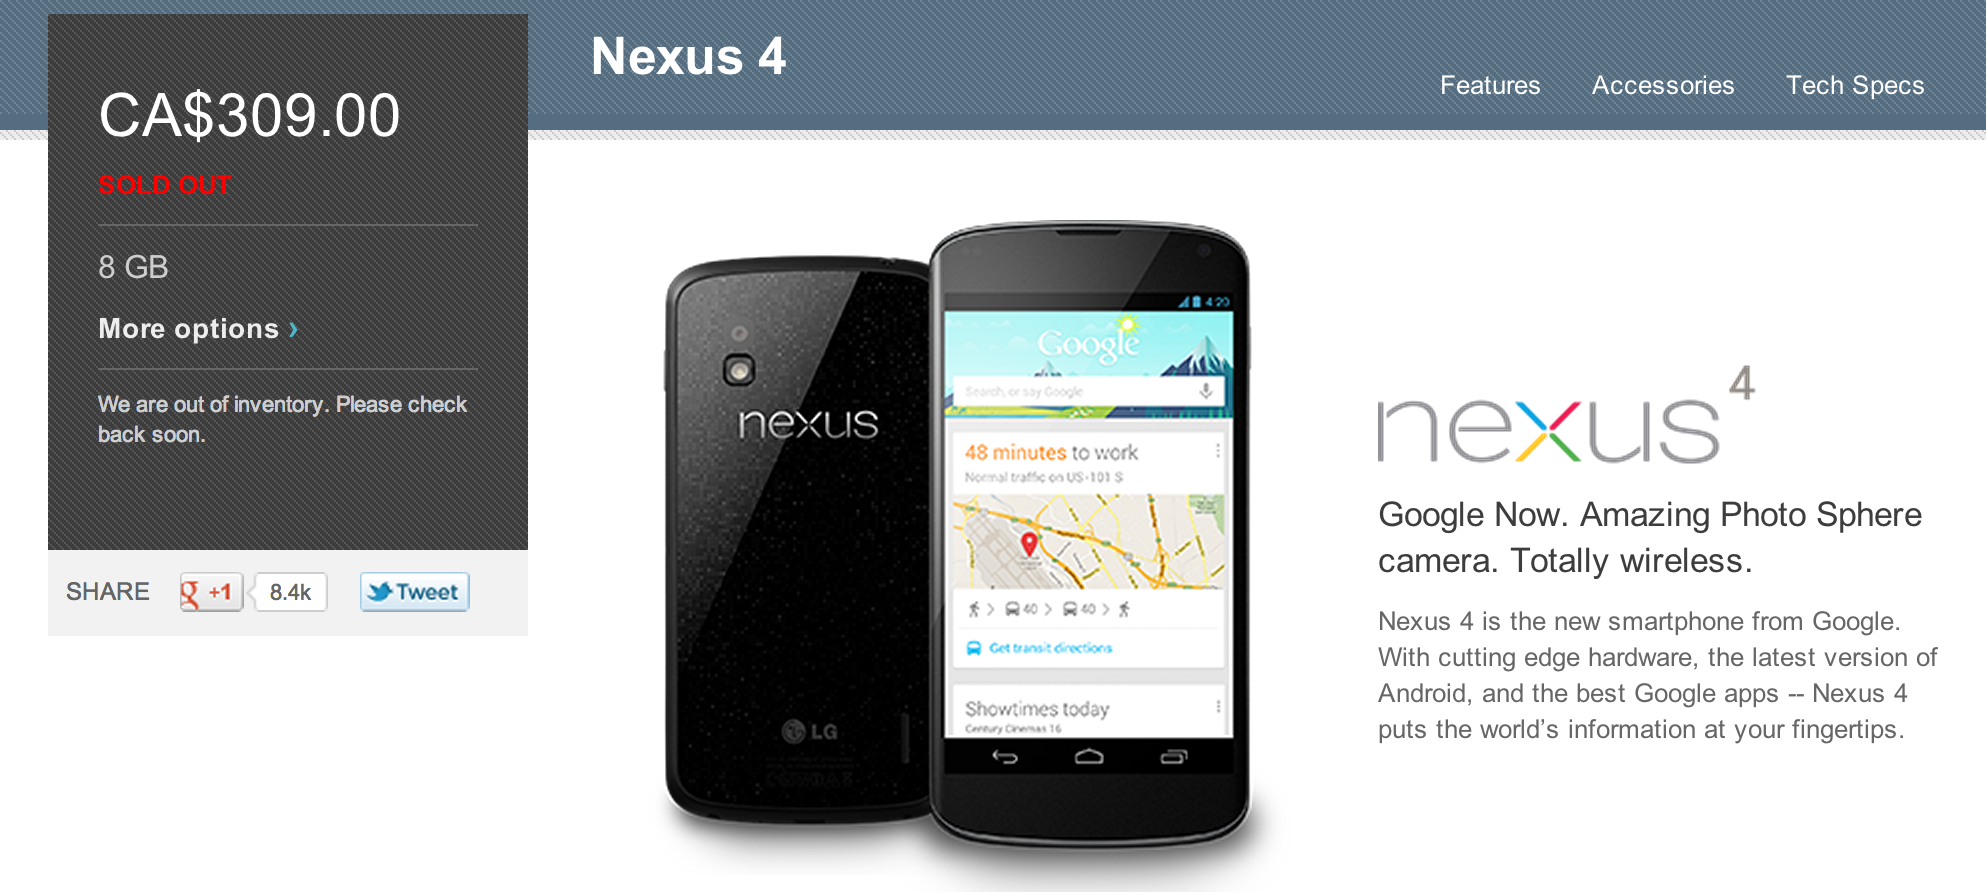 Nexus 4 sold out